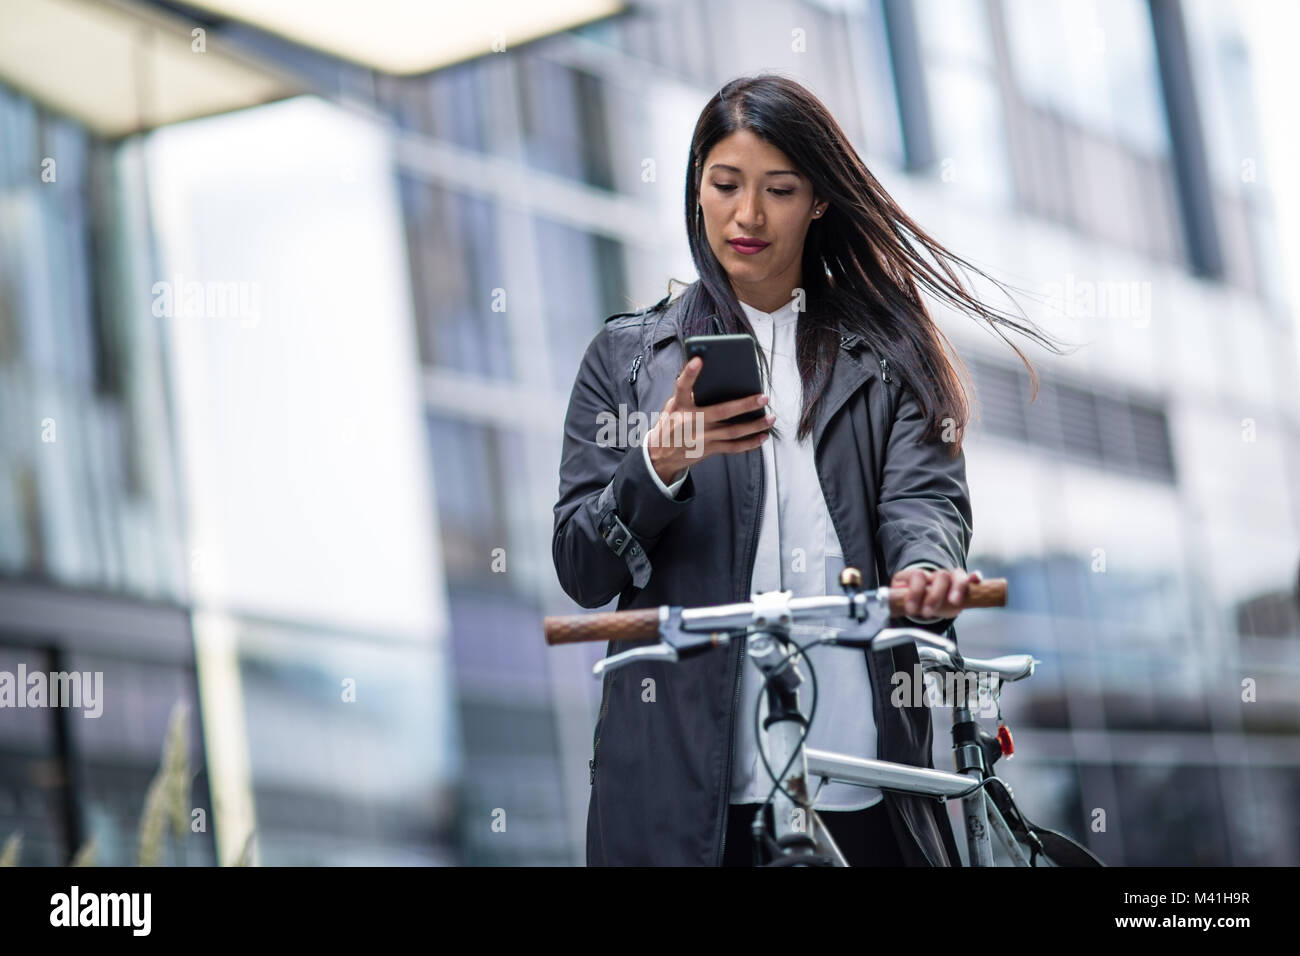 Businesswoman cycling to work using smartphone - Stock Image